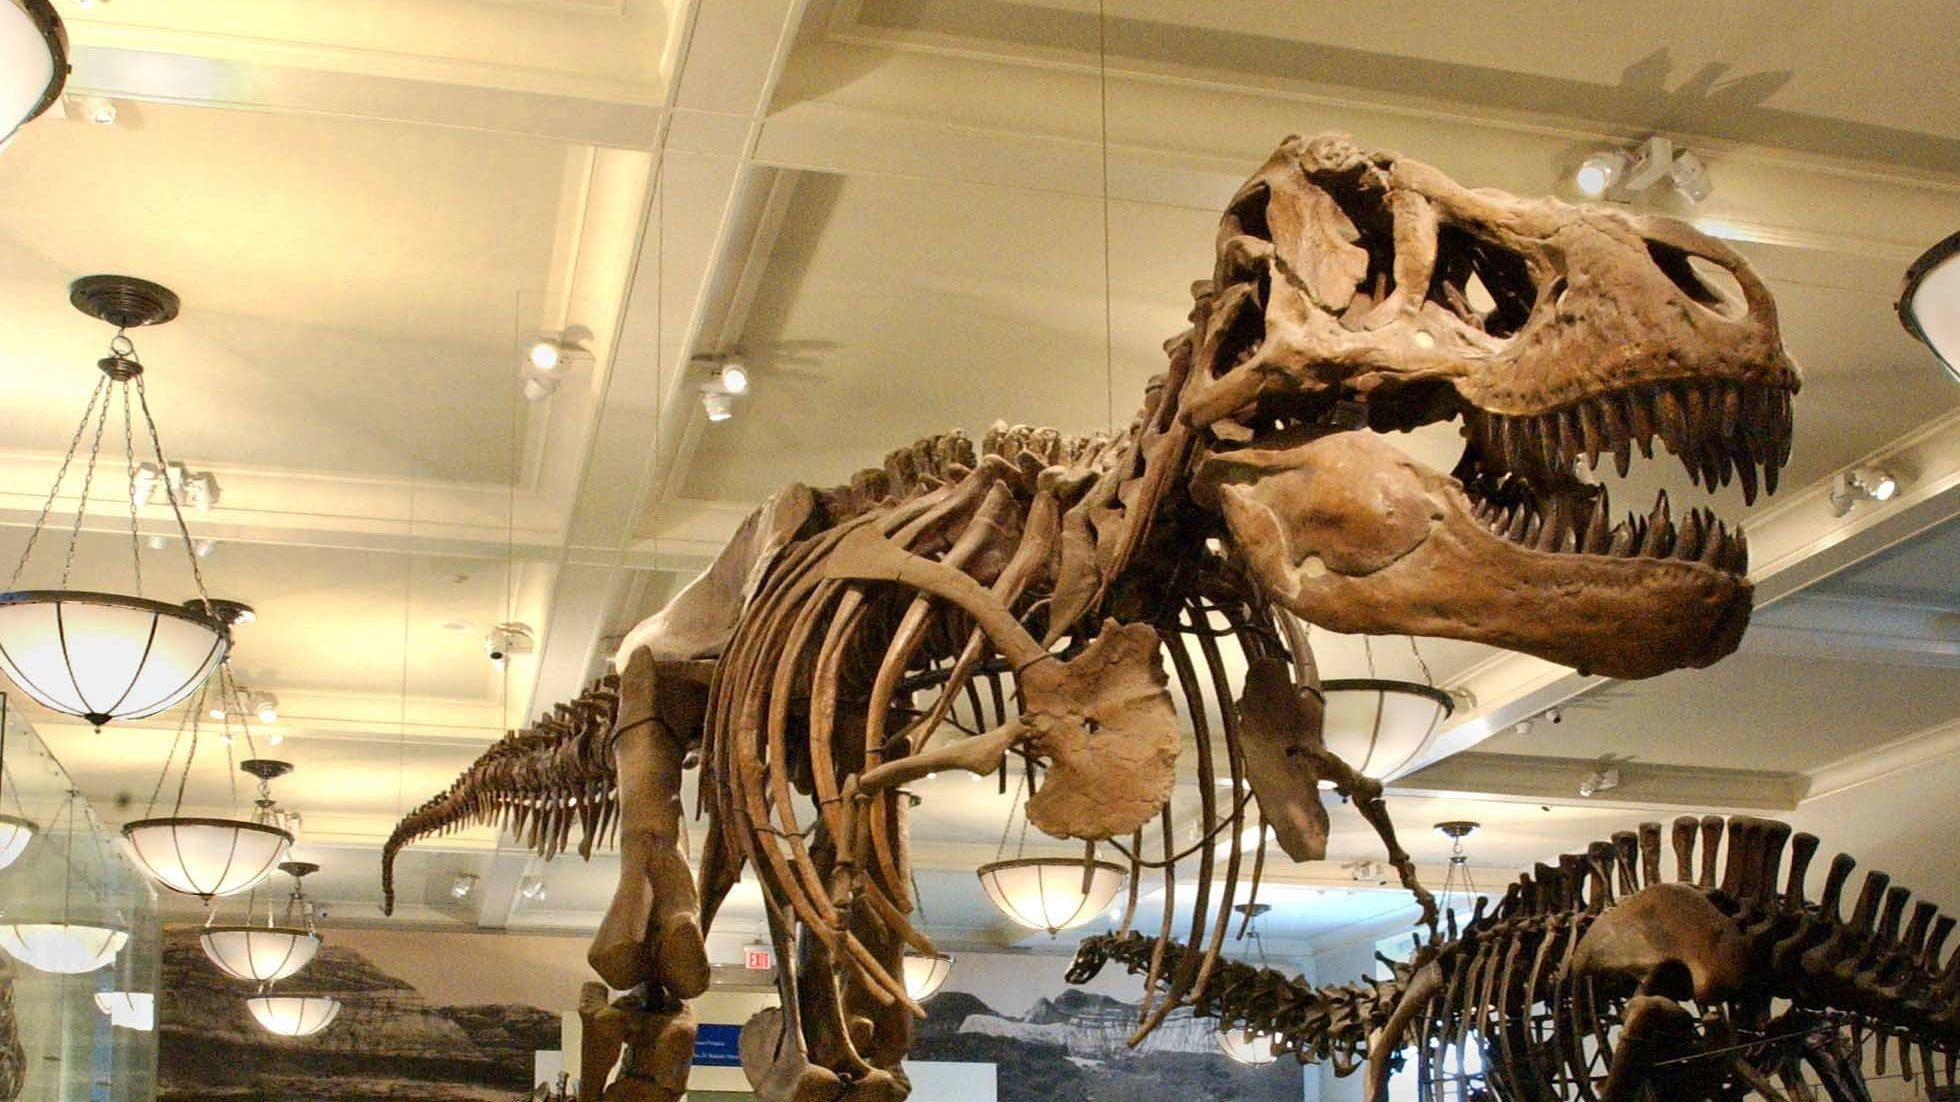 Tyrannosaurs rex skeleton in the American Museum of Natural History in New York